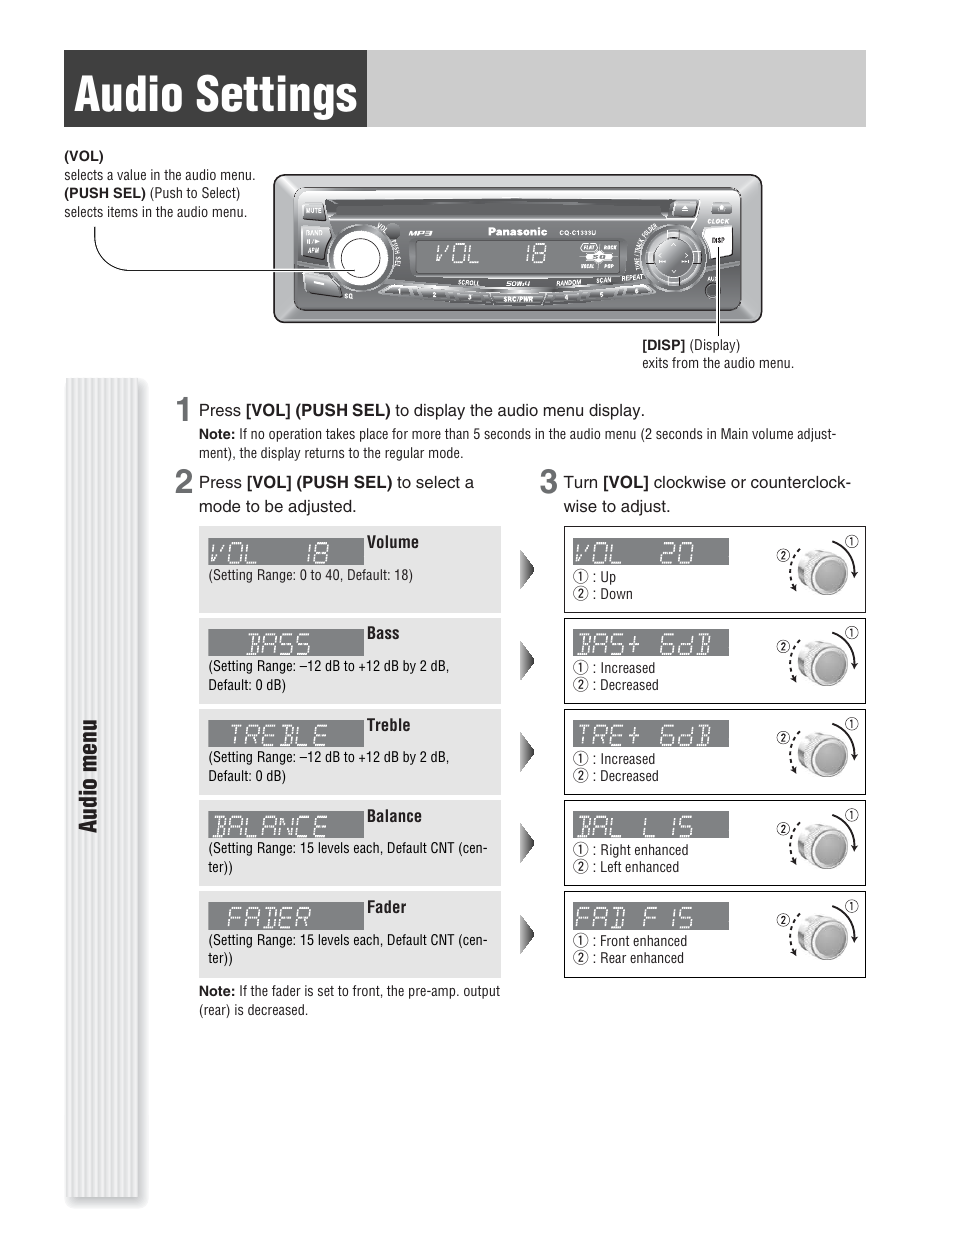 Panasonic Cq Vd6505u Wiring Diagram Diagrams Data Base C1121u C1333u Online Schematics Rh Delvato Co On Double Din Radio For Audio Settings Menu